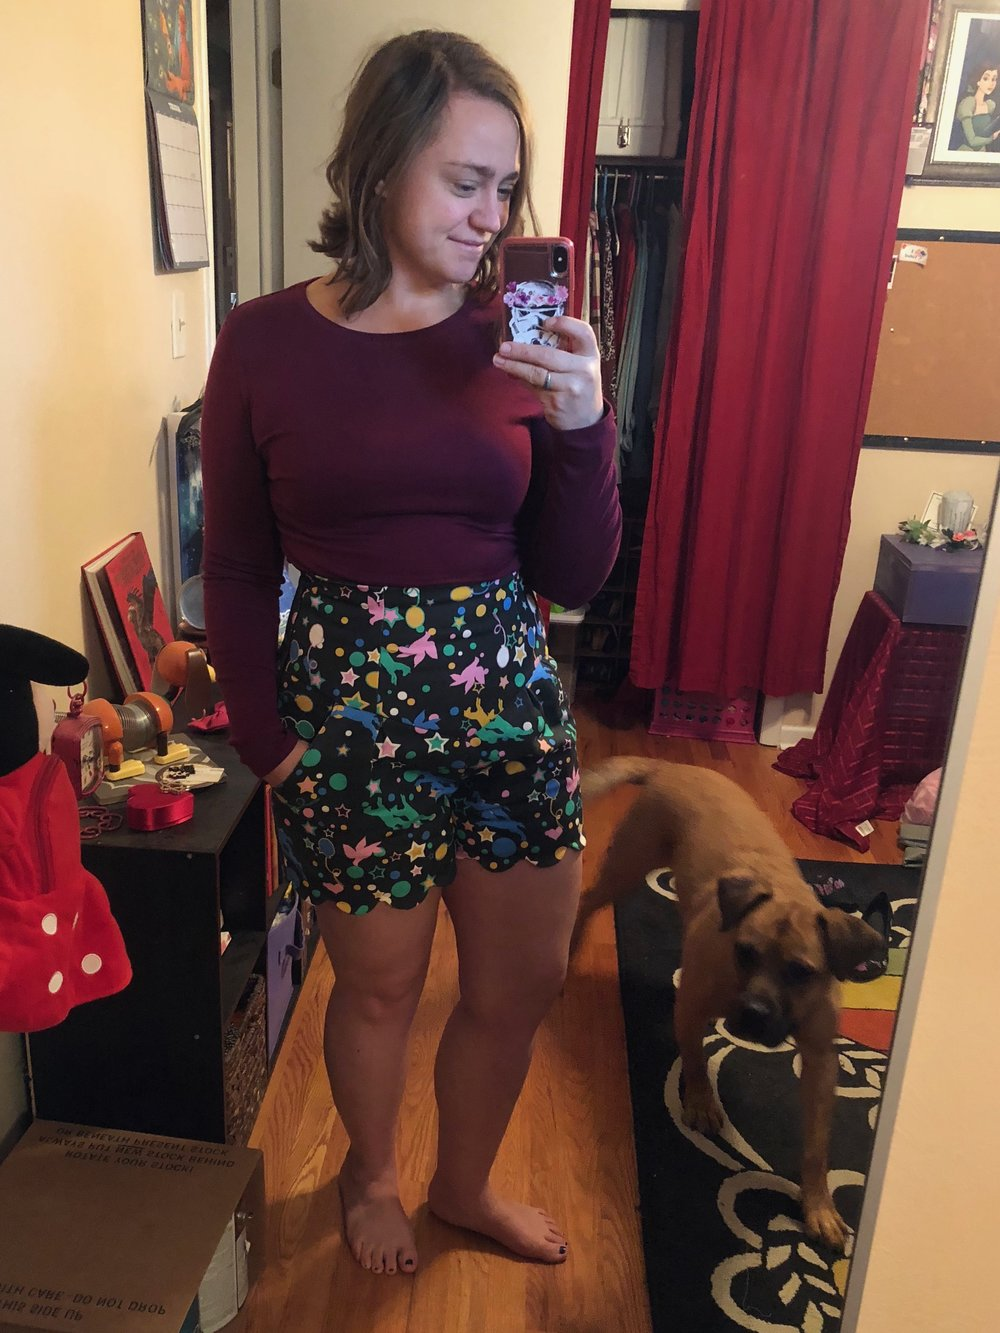 That SUPER high waist - featuring Rosco, the photobomber